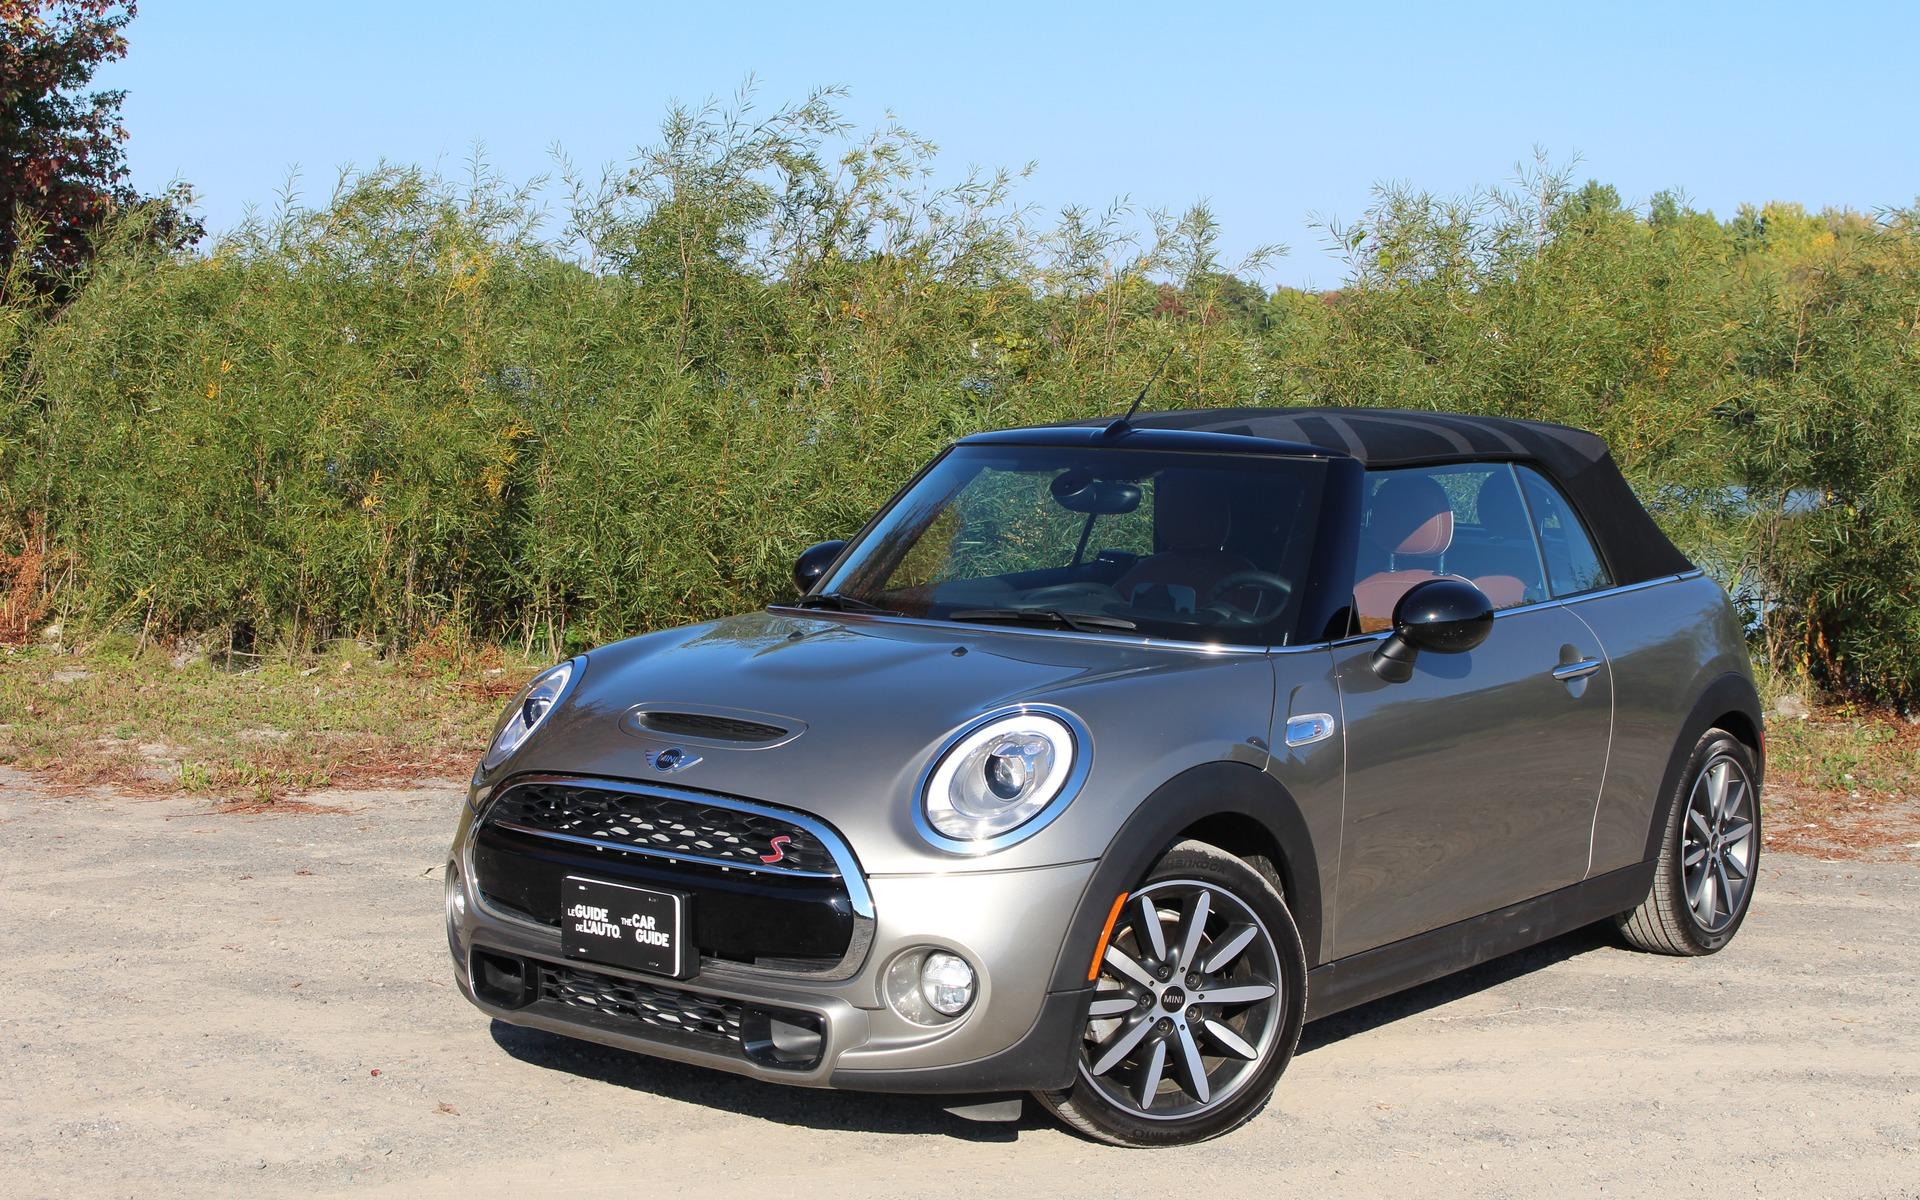 2016 Mini Cooper S Convertible Another Reason To Hate Winter 2425